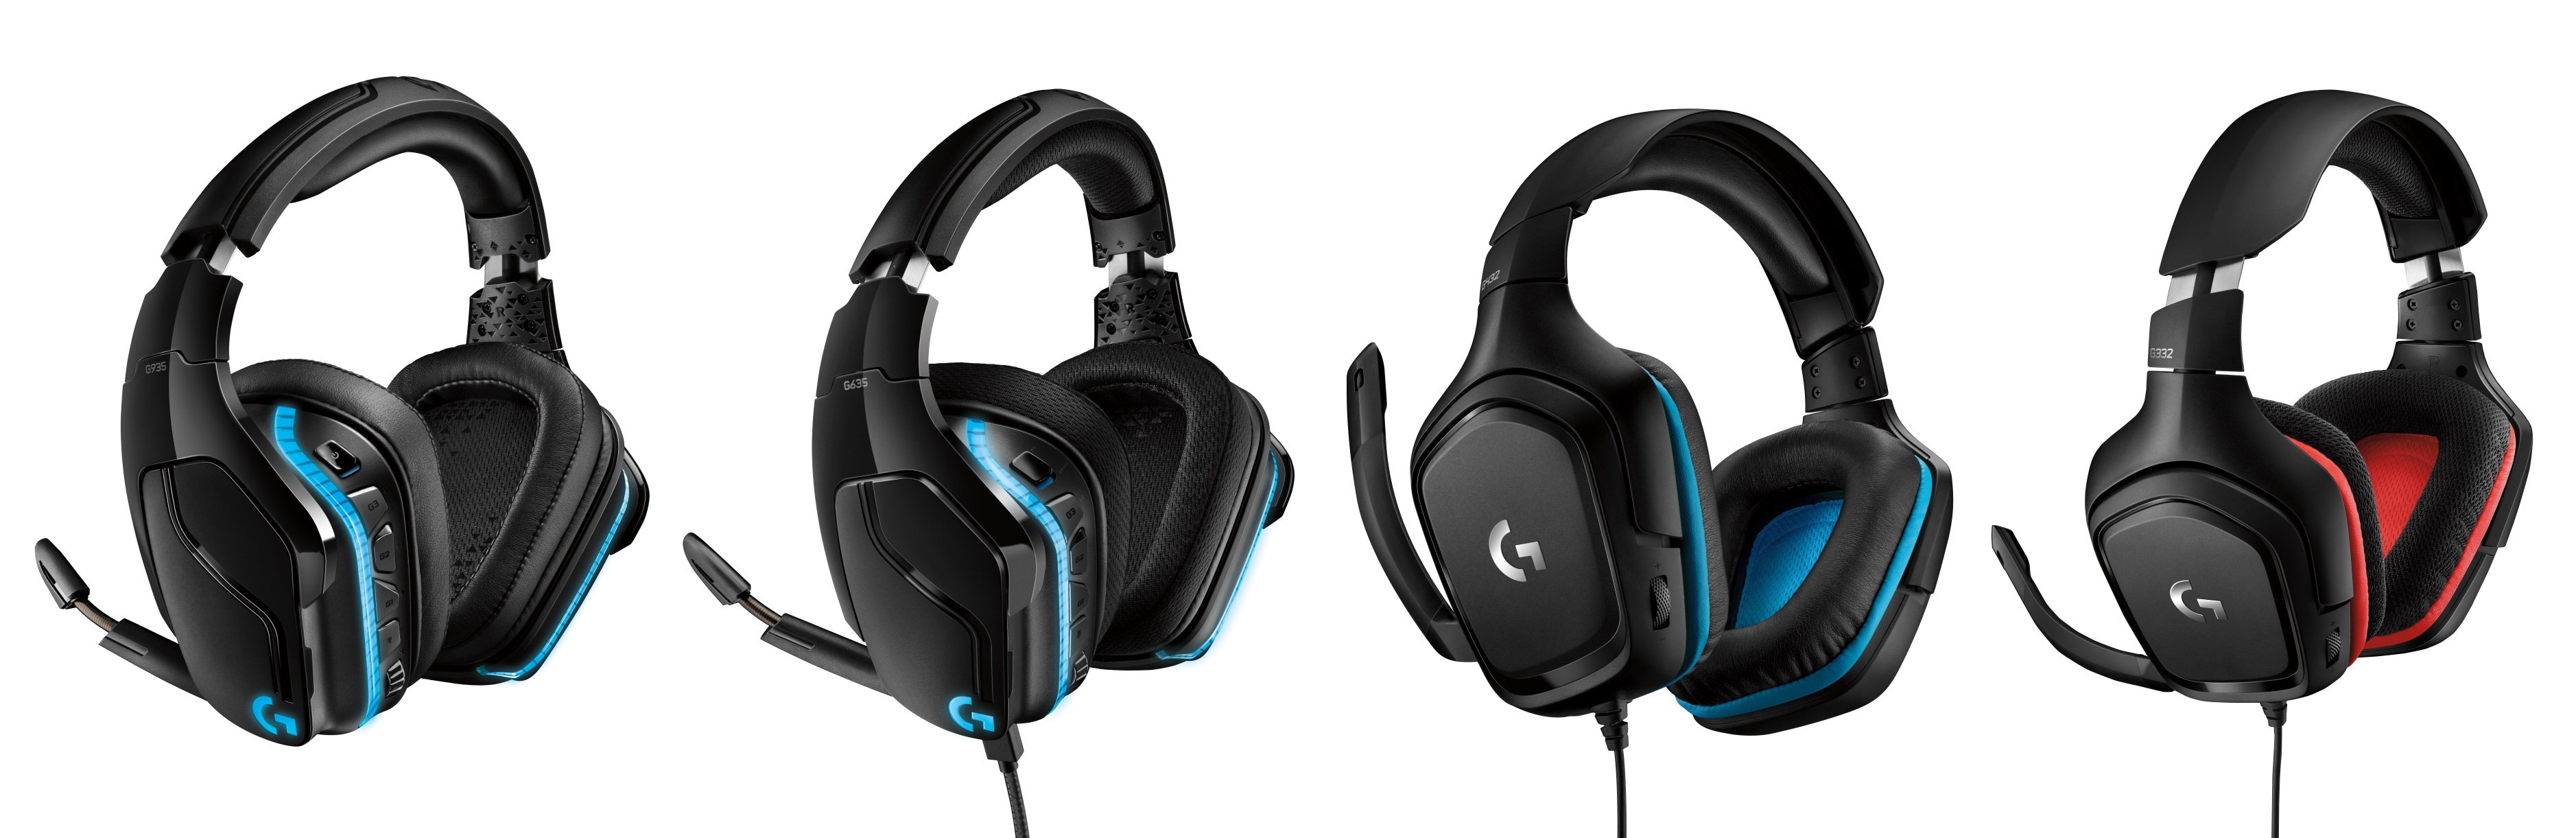 Logitech's G935 headlines new series of gaming headsets | Rock Paper